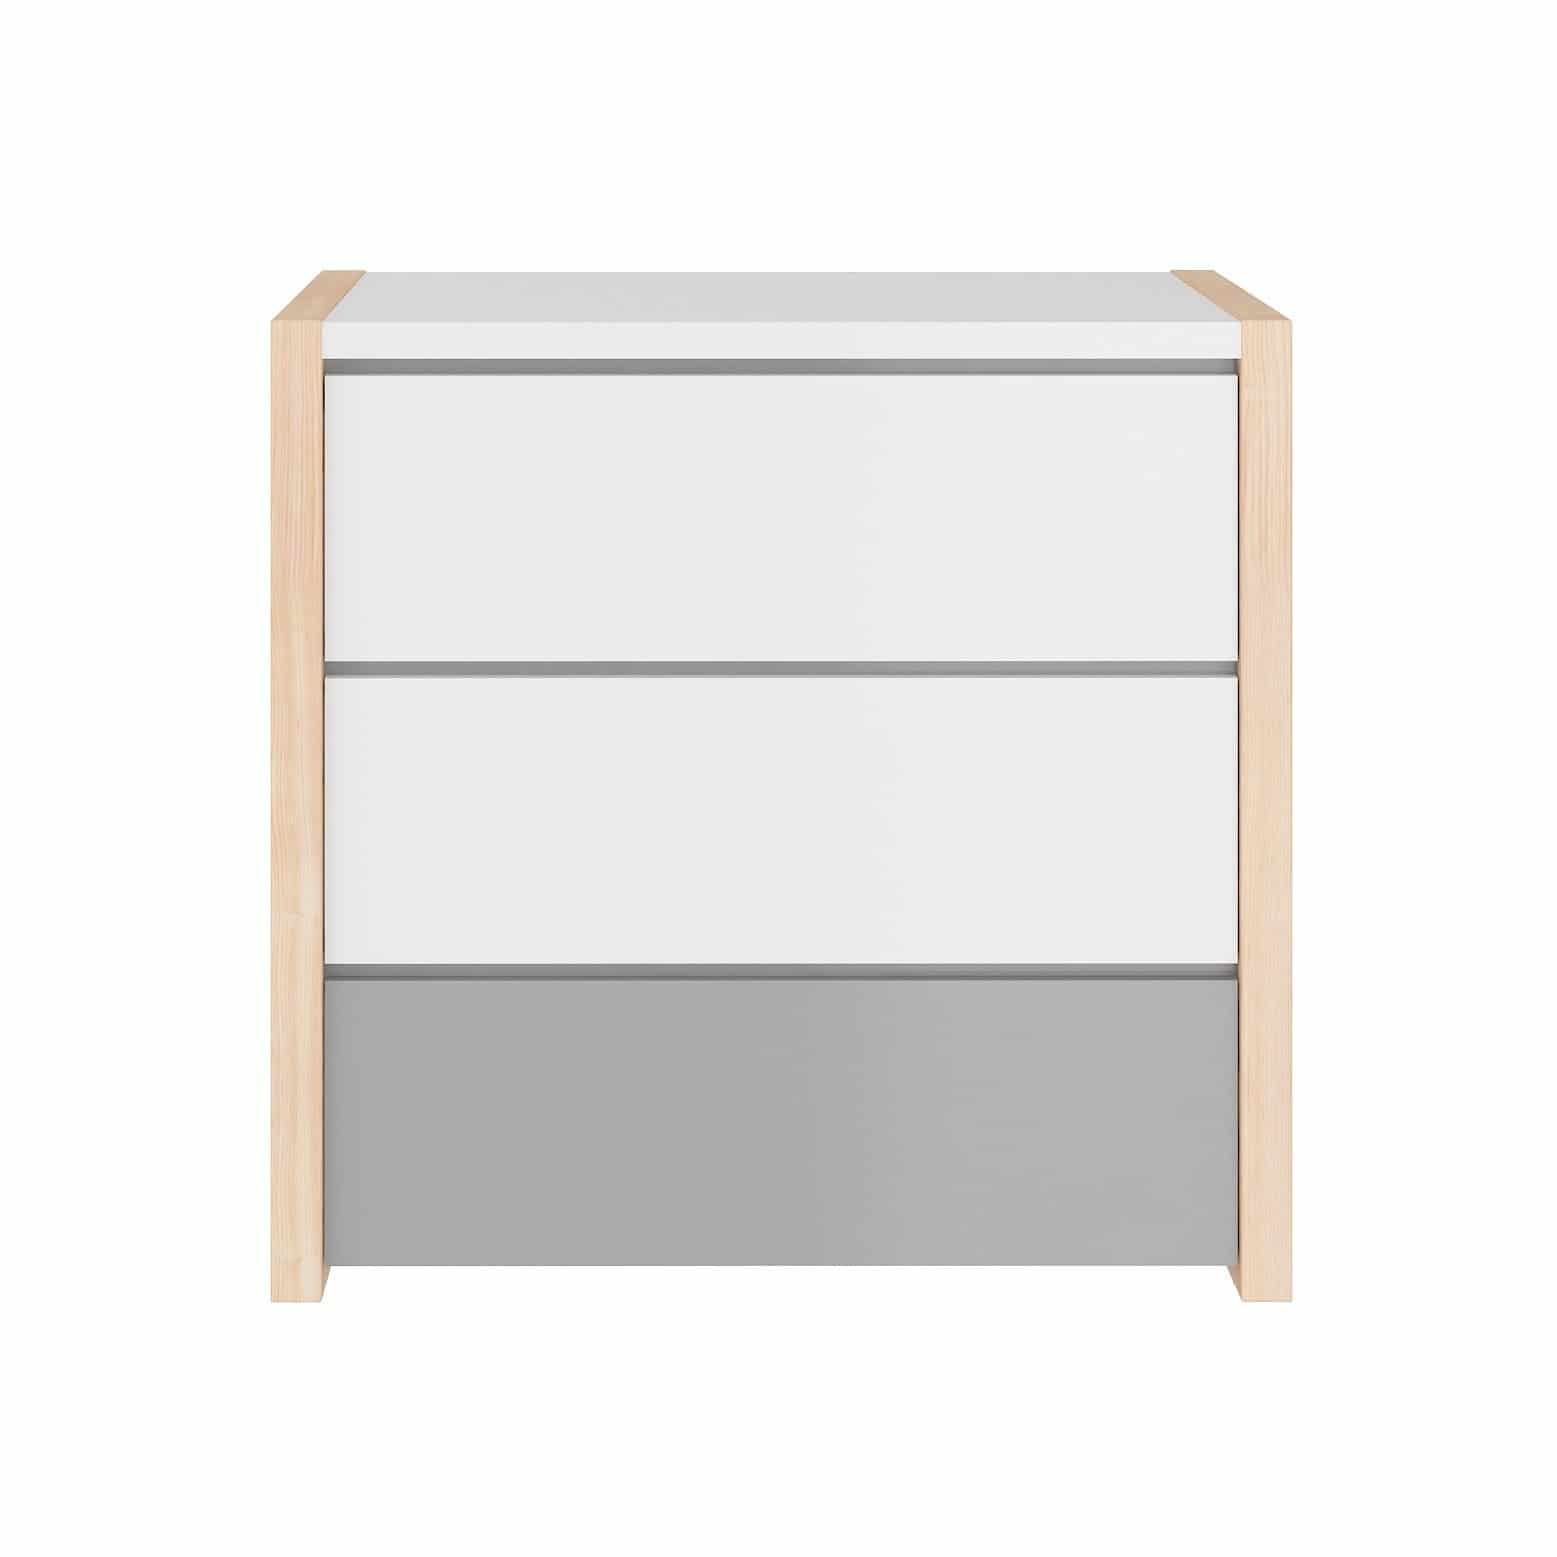 Pinette - Chest of Drawers in Pine, White & Grey